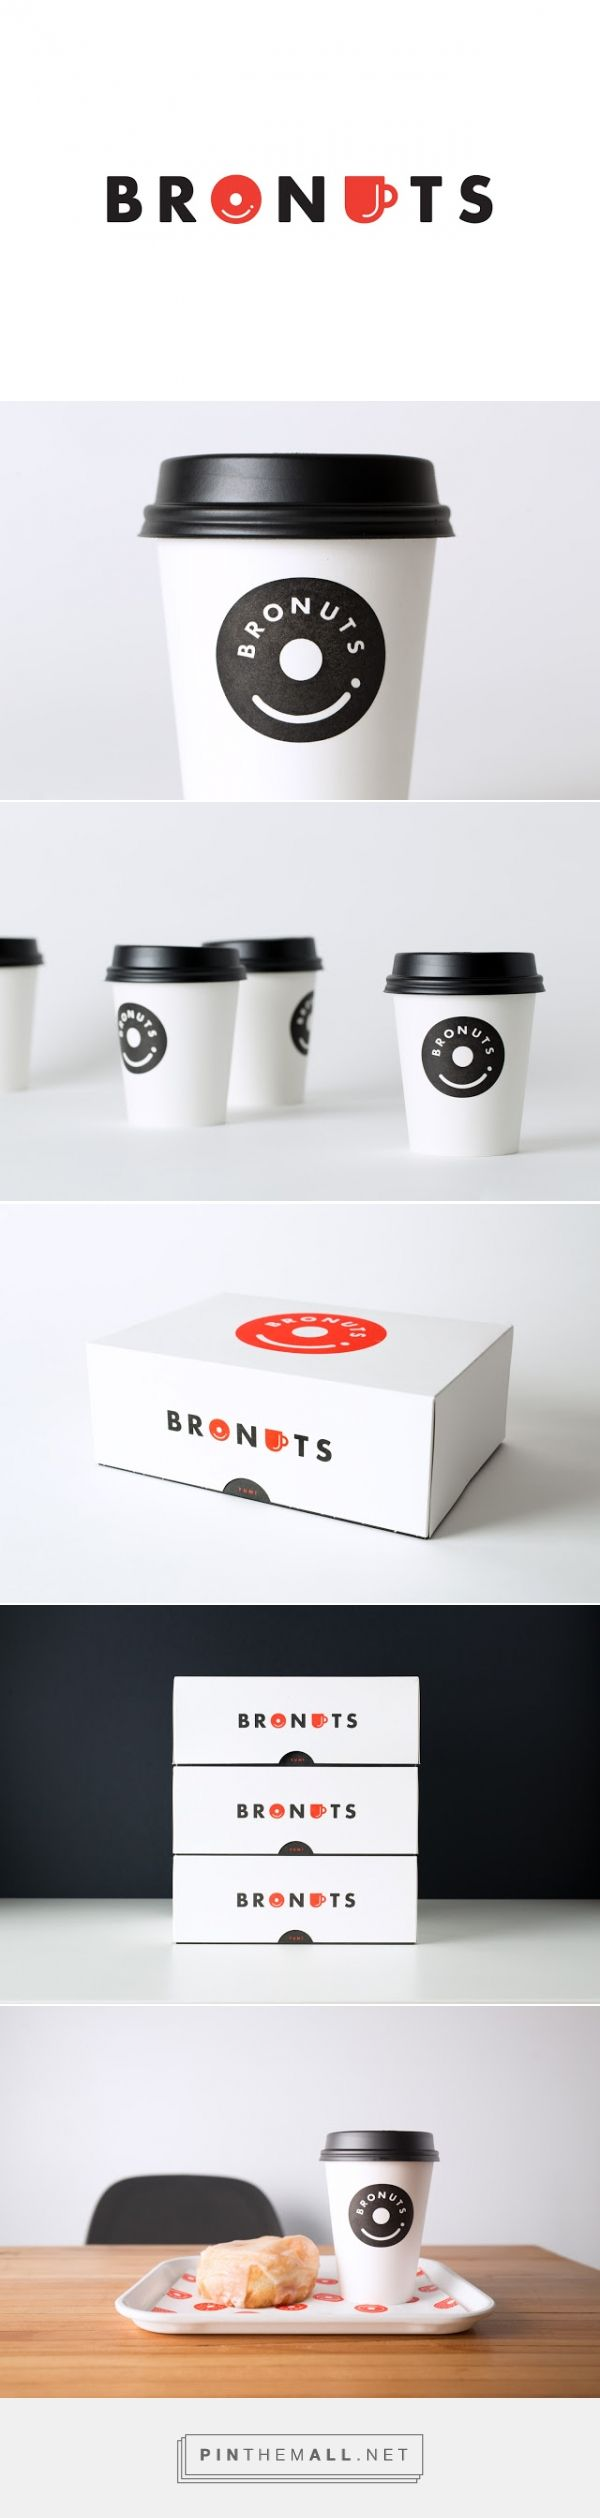 Bronuts Donuts packaging designed by One Plus One Design - http://www.packagingoftheworld.com/2015/11/bronuts-donuts.html